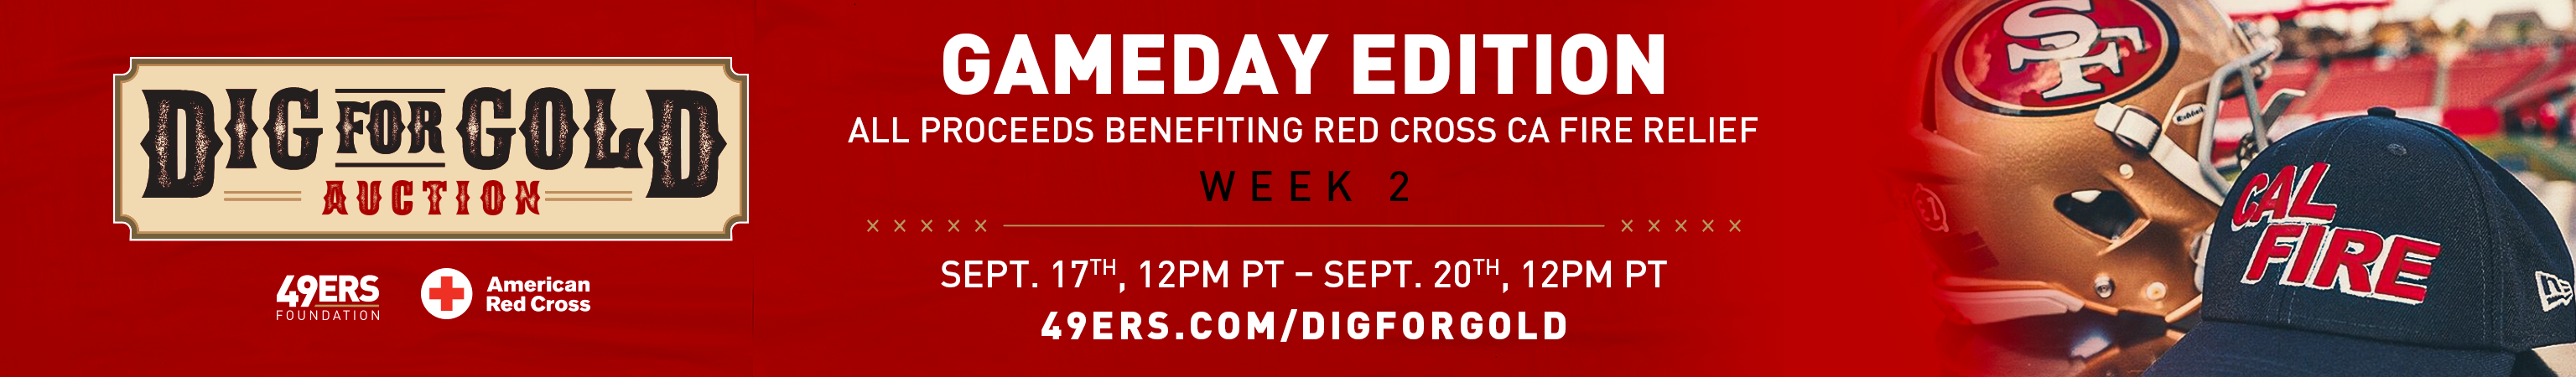 Gameday-Auction-D4G-Week2-SiteHeader-Auction-3072x450